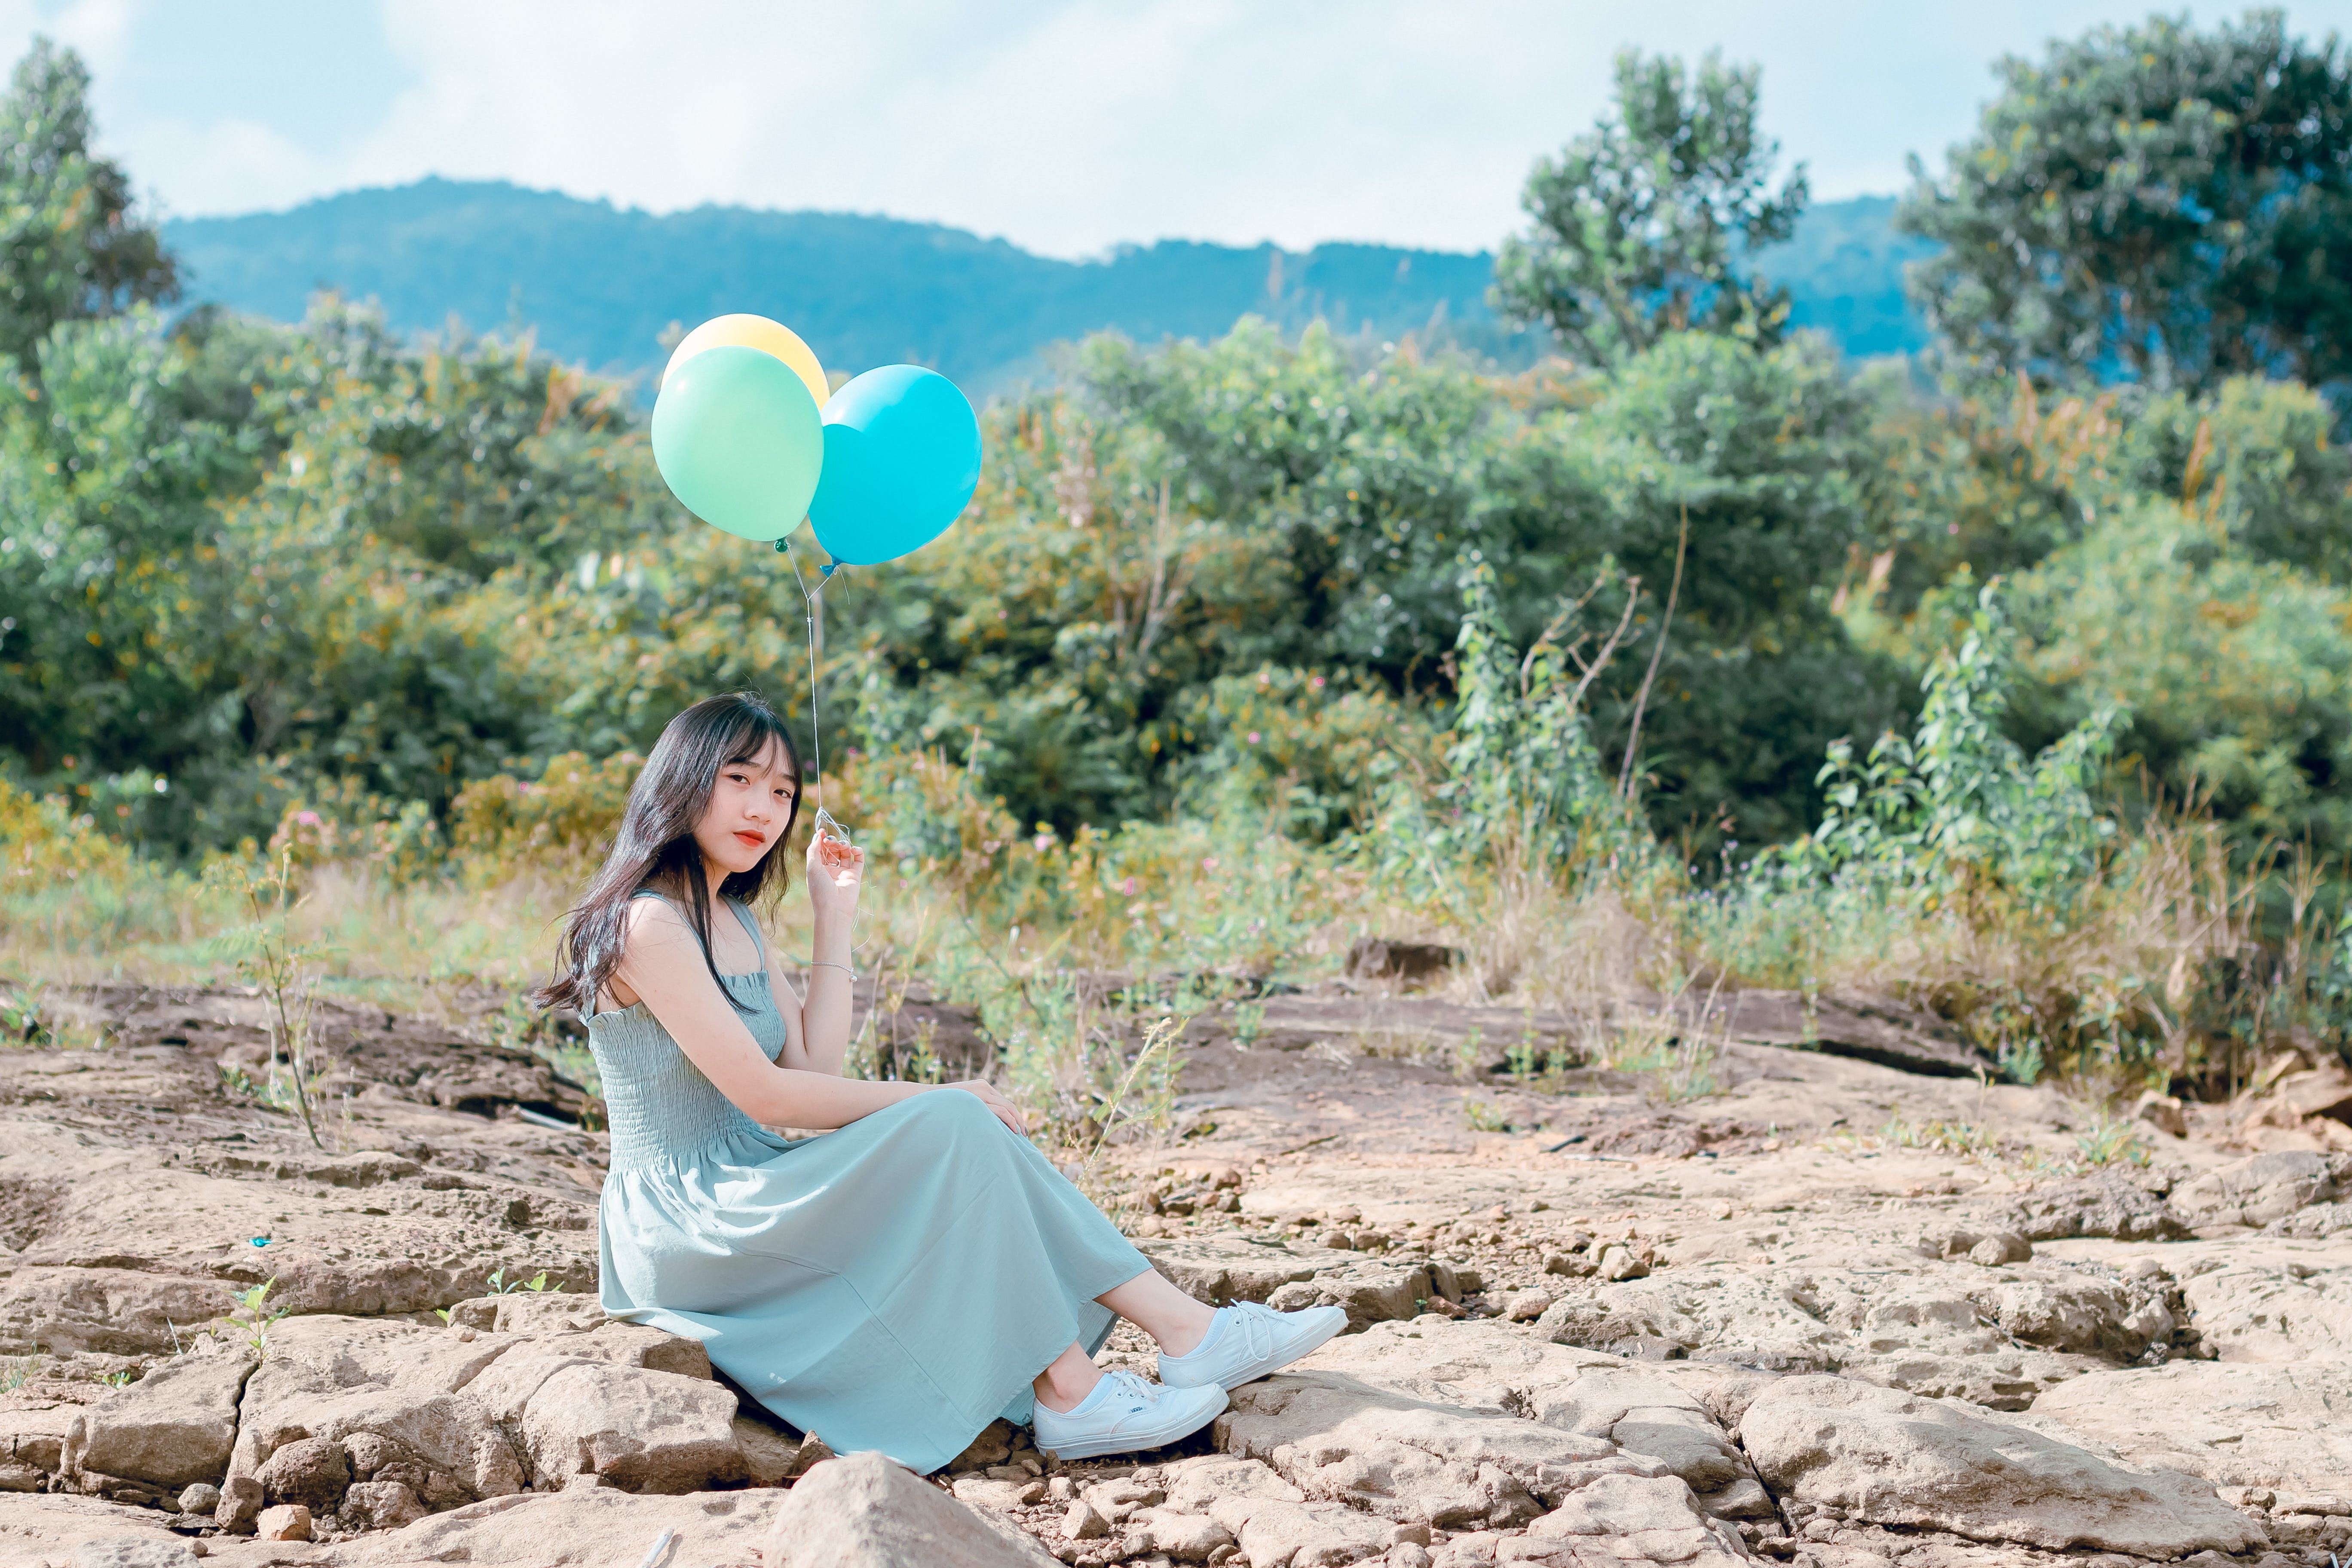 Woman Sitting On Rocks Holding Balloons